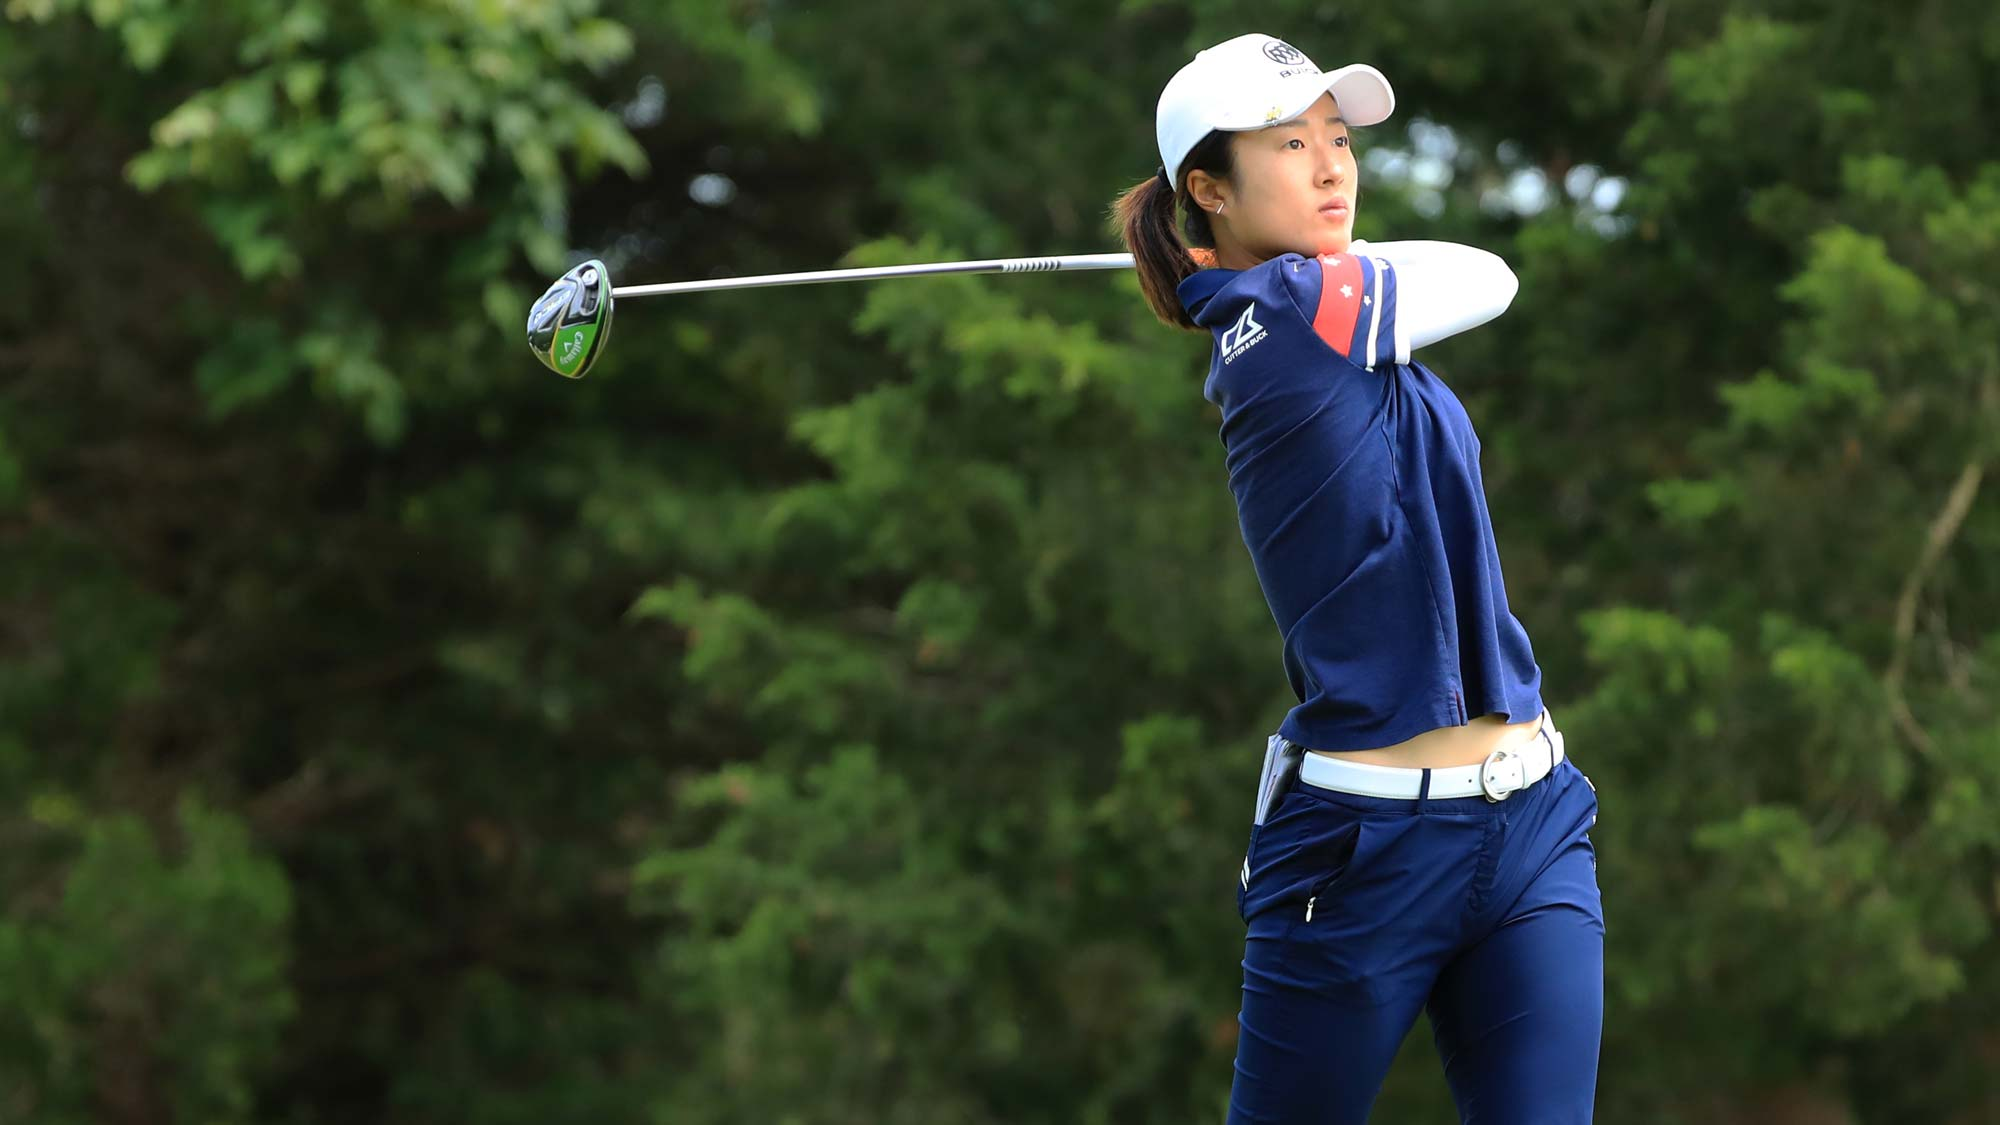 Yu Liu of China hits her tee shot on the 16th hole during the second round of the ShopRite LPGA Classic presented by Acer